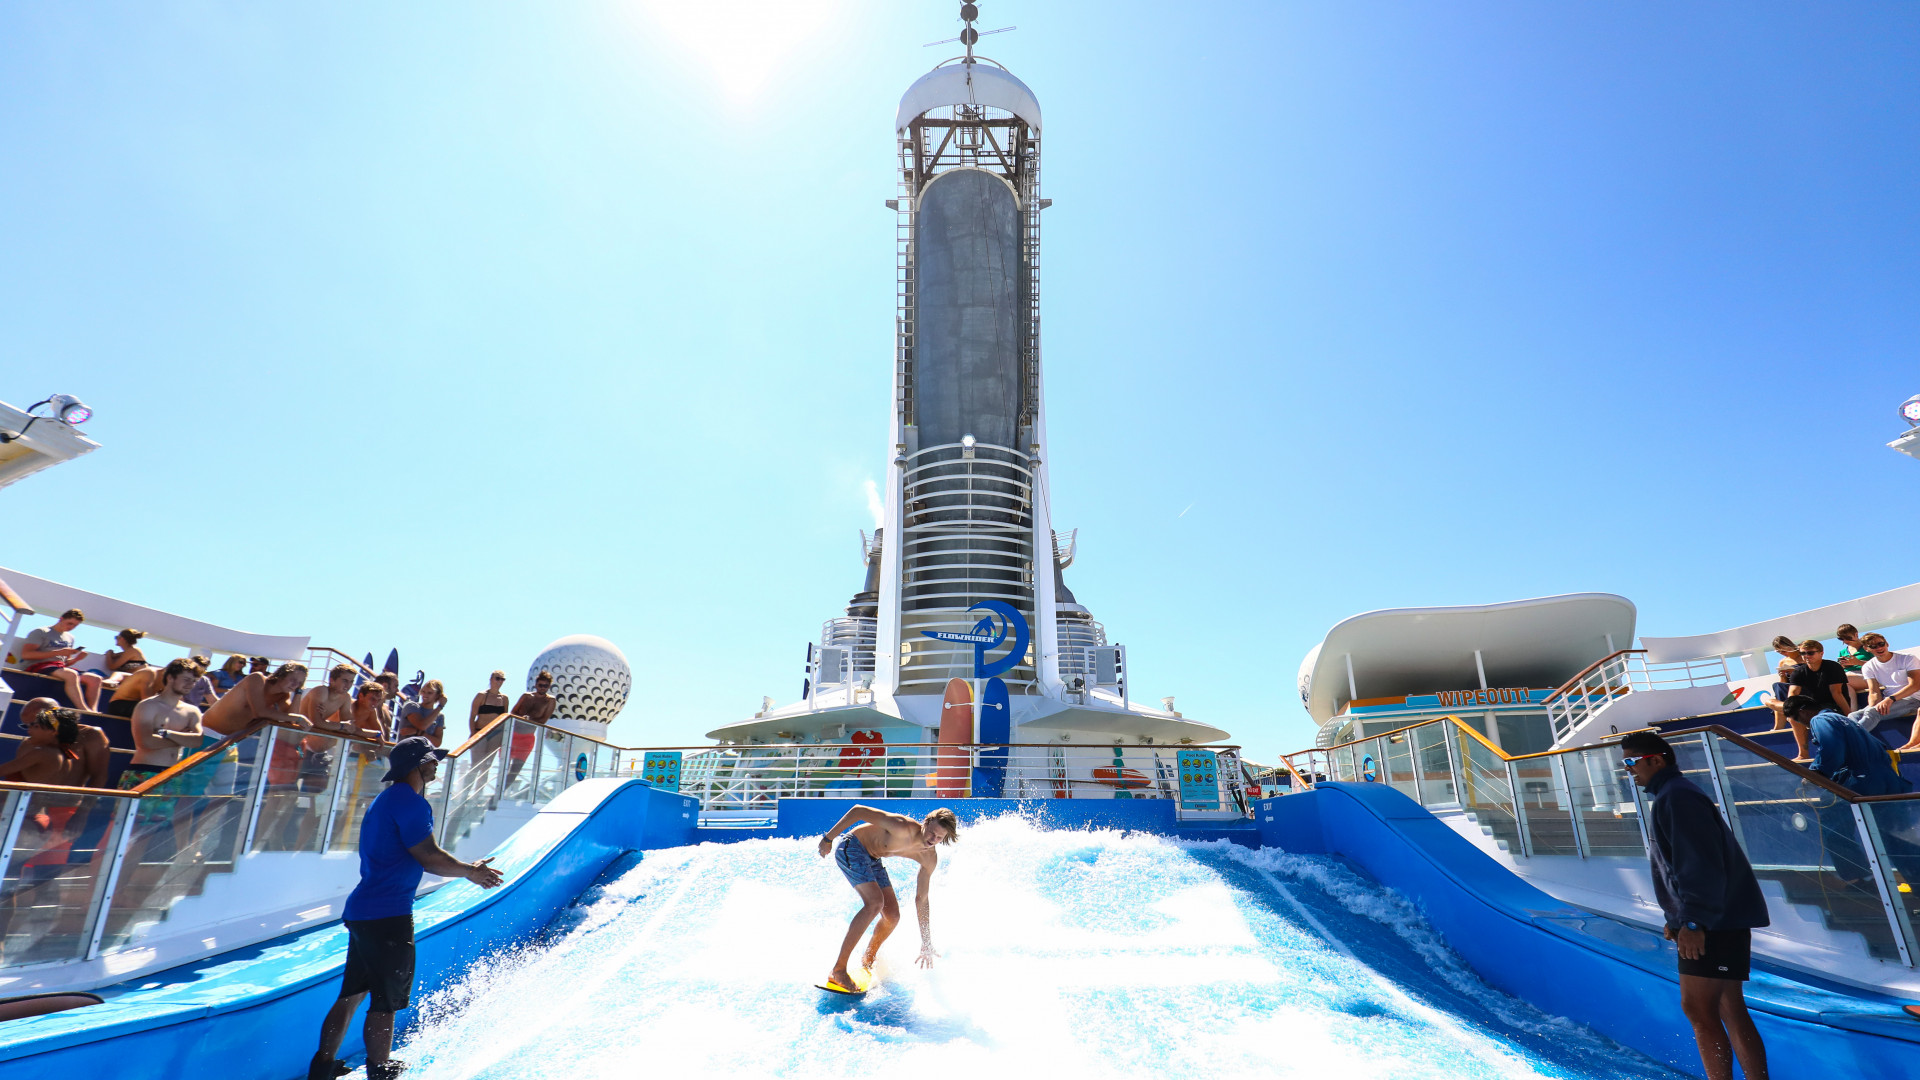 Surfing at Ark cruise festival in the Mediterranean